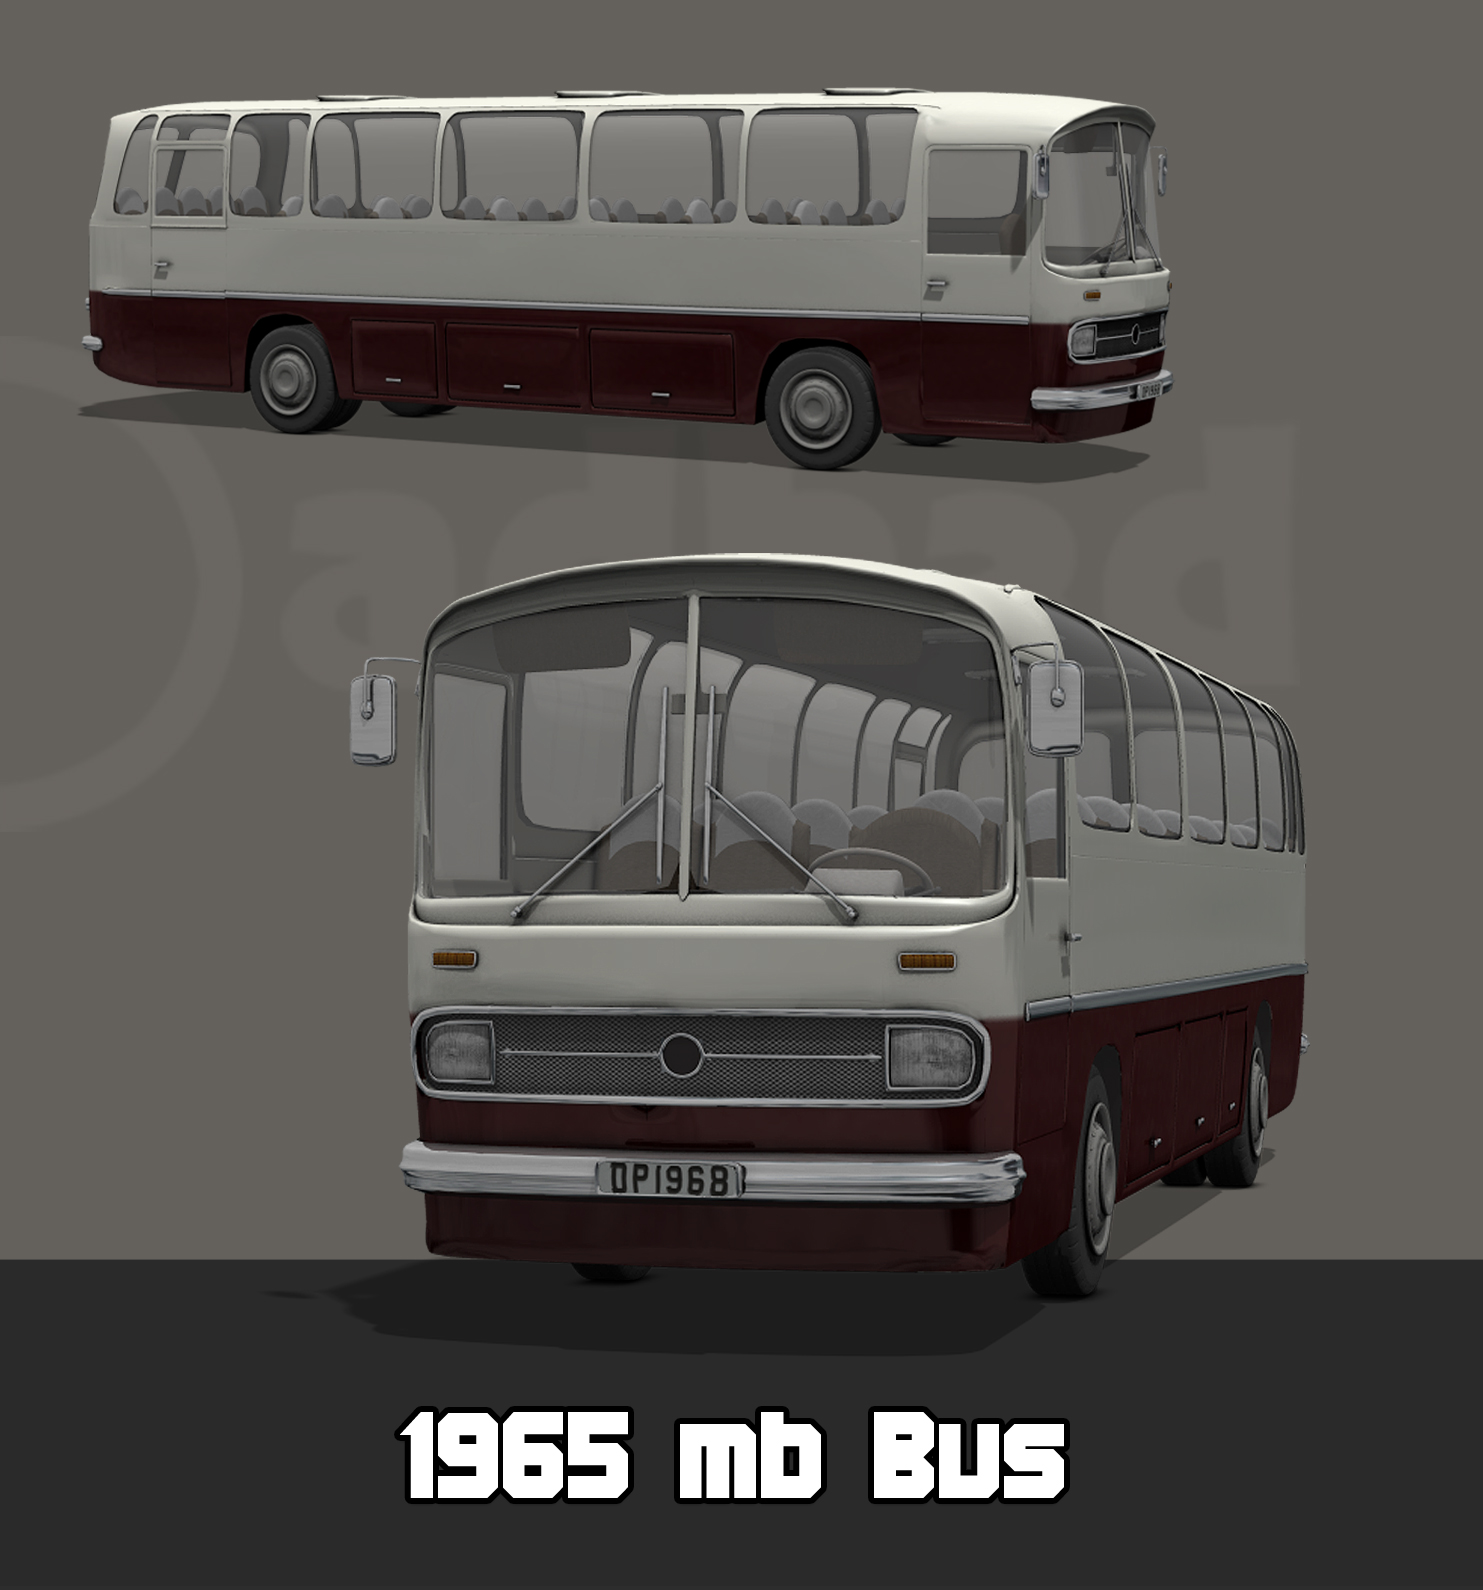 1965 MB Bus by adh3d